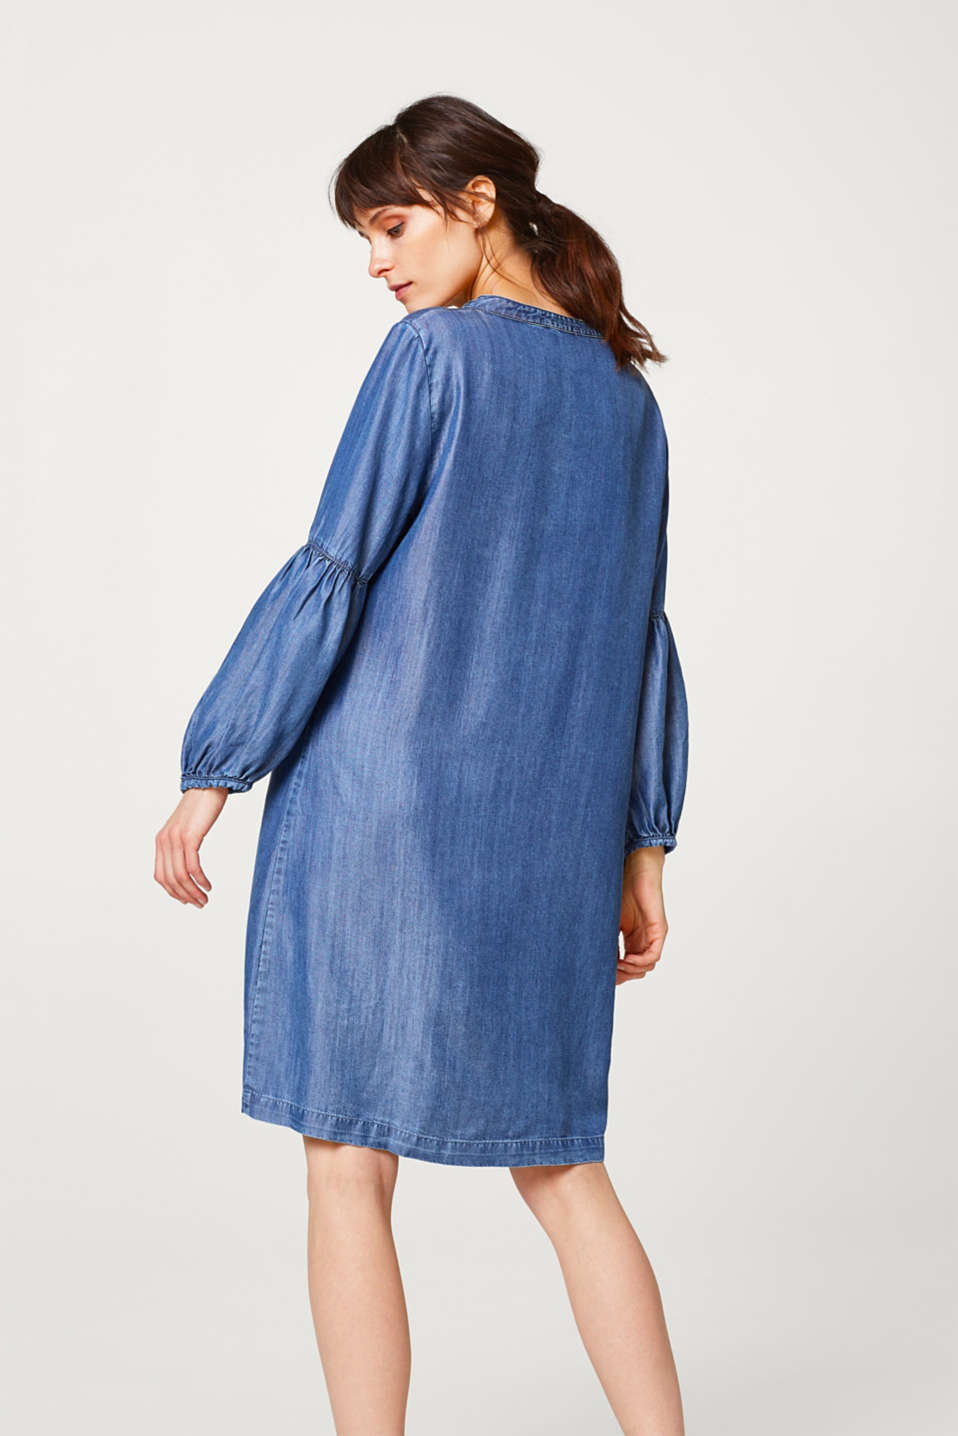 Fließendes Kleid in Denim-Optik mit Ballon-Ärmeln